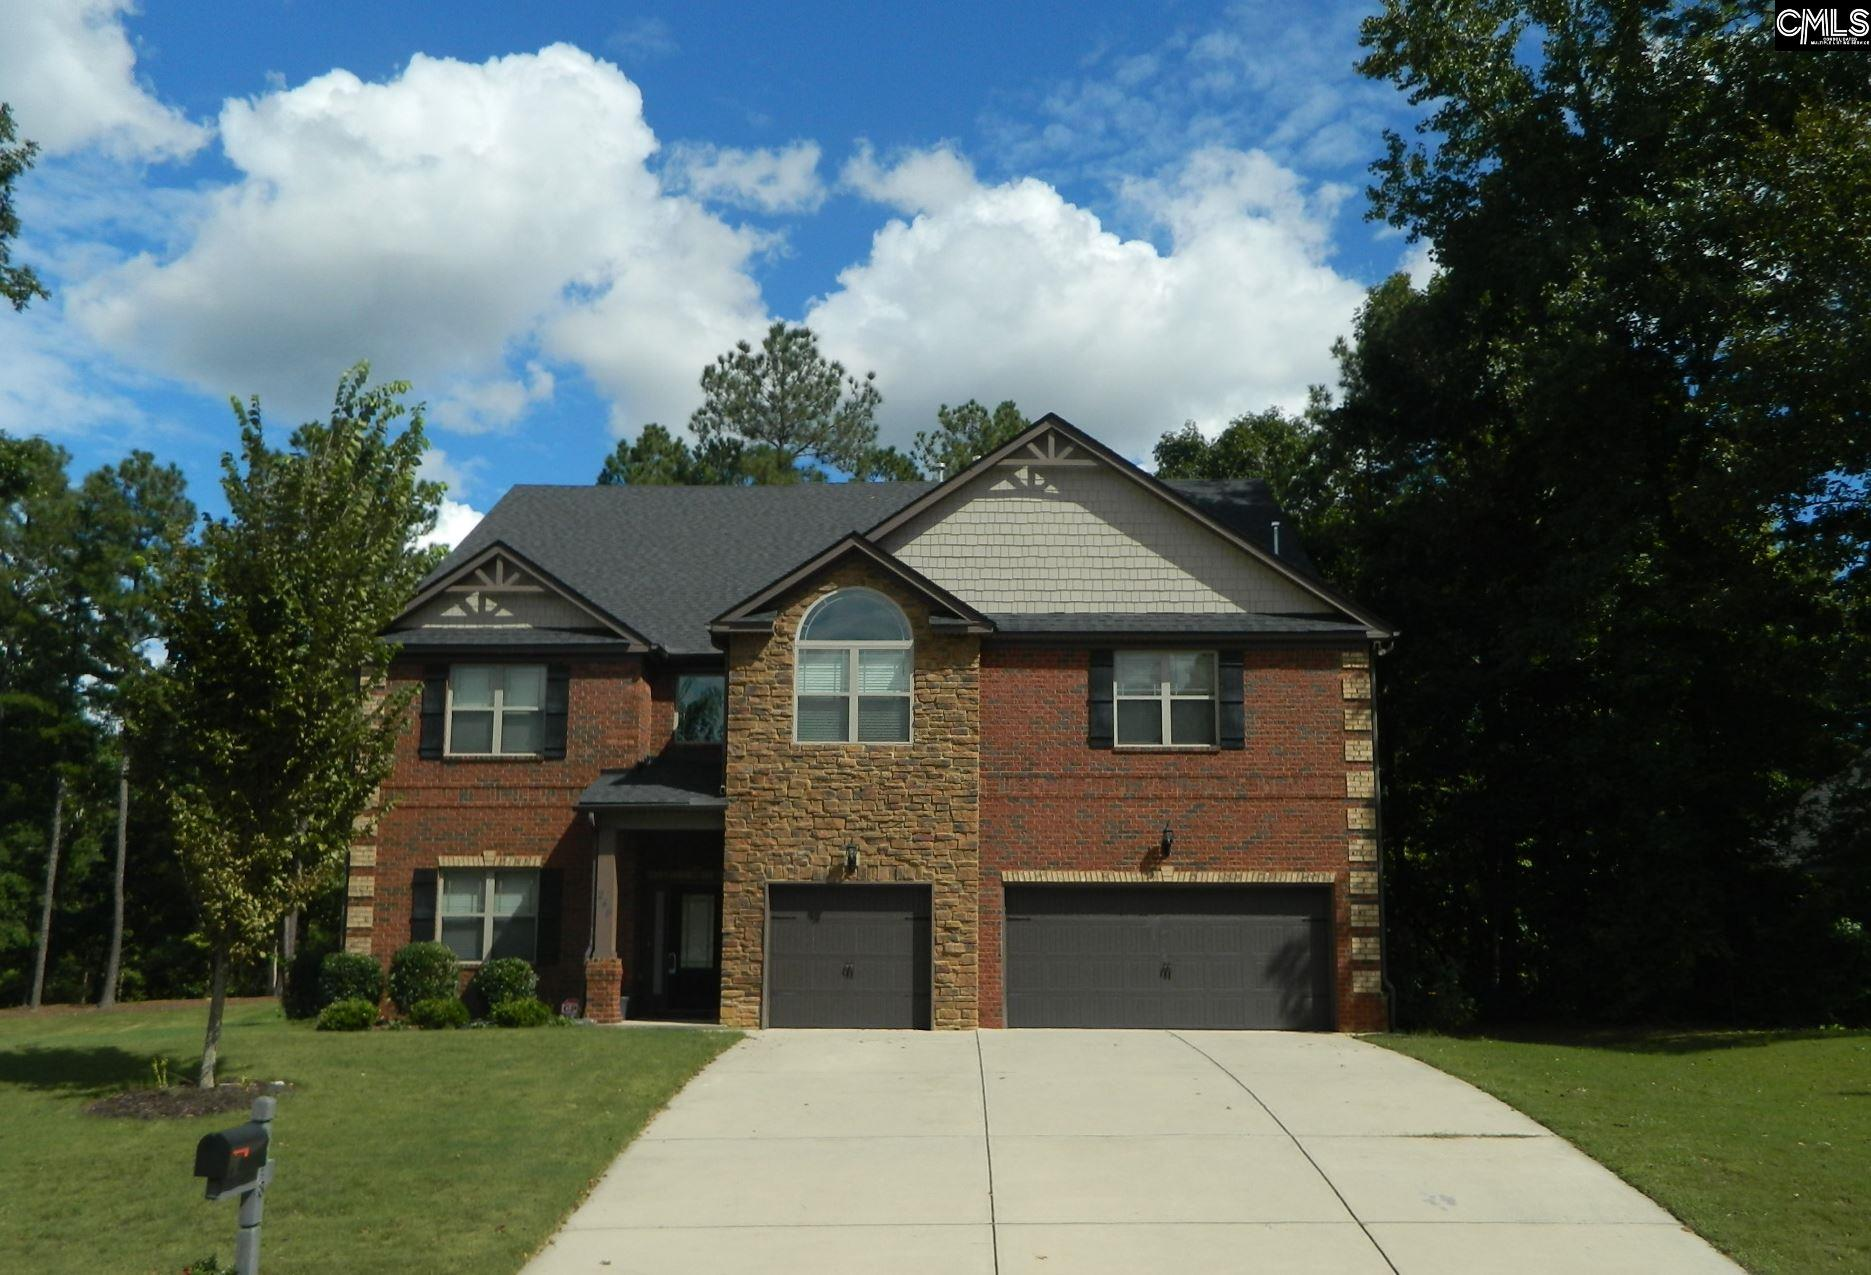 248 Winding Oak Way Blythewood, SC 29016